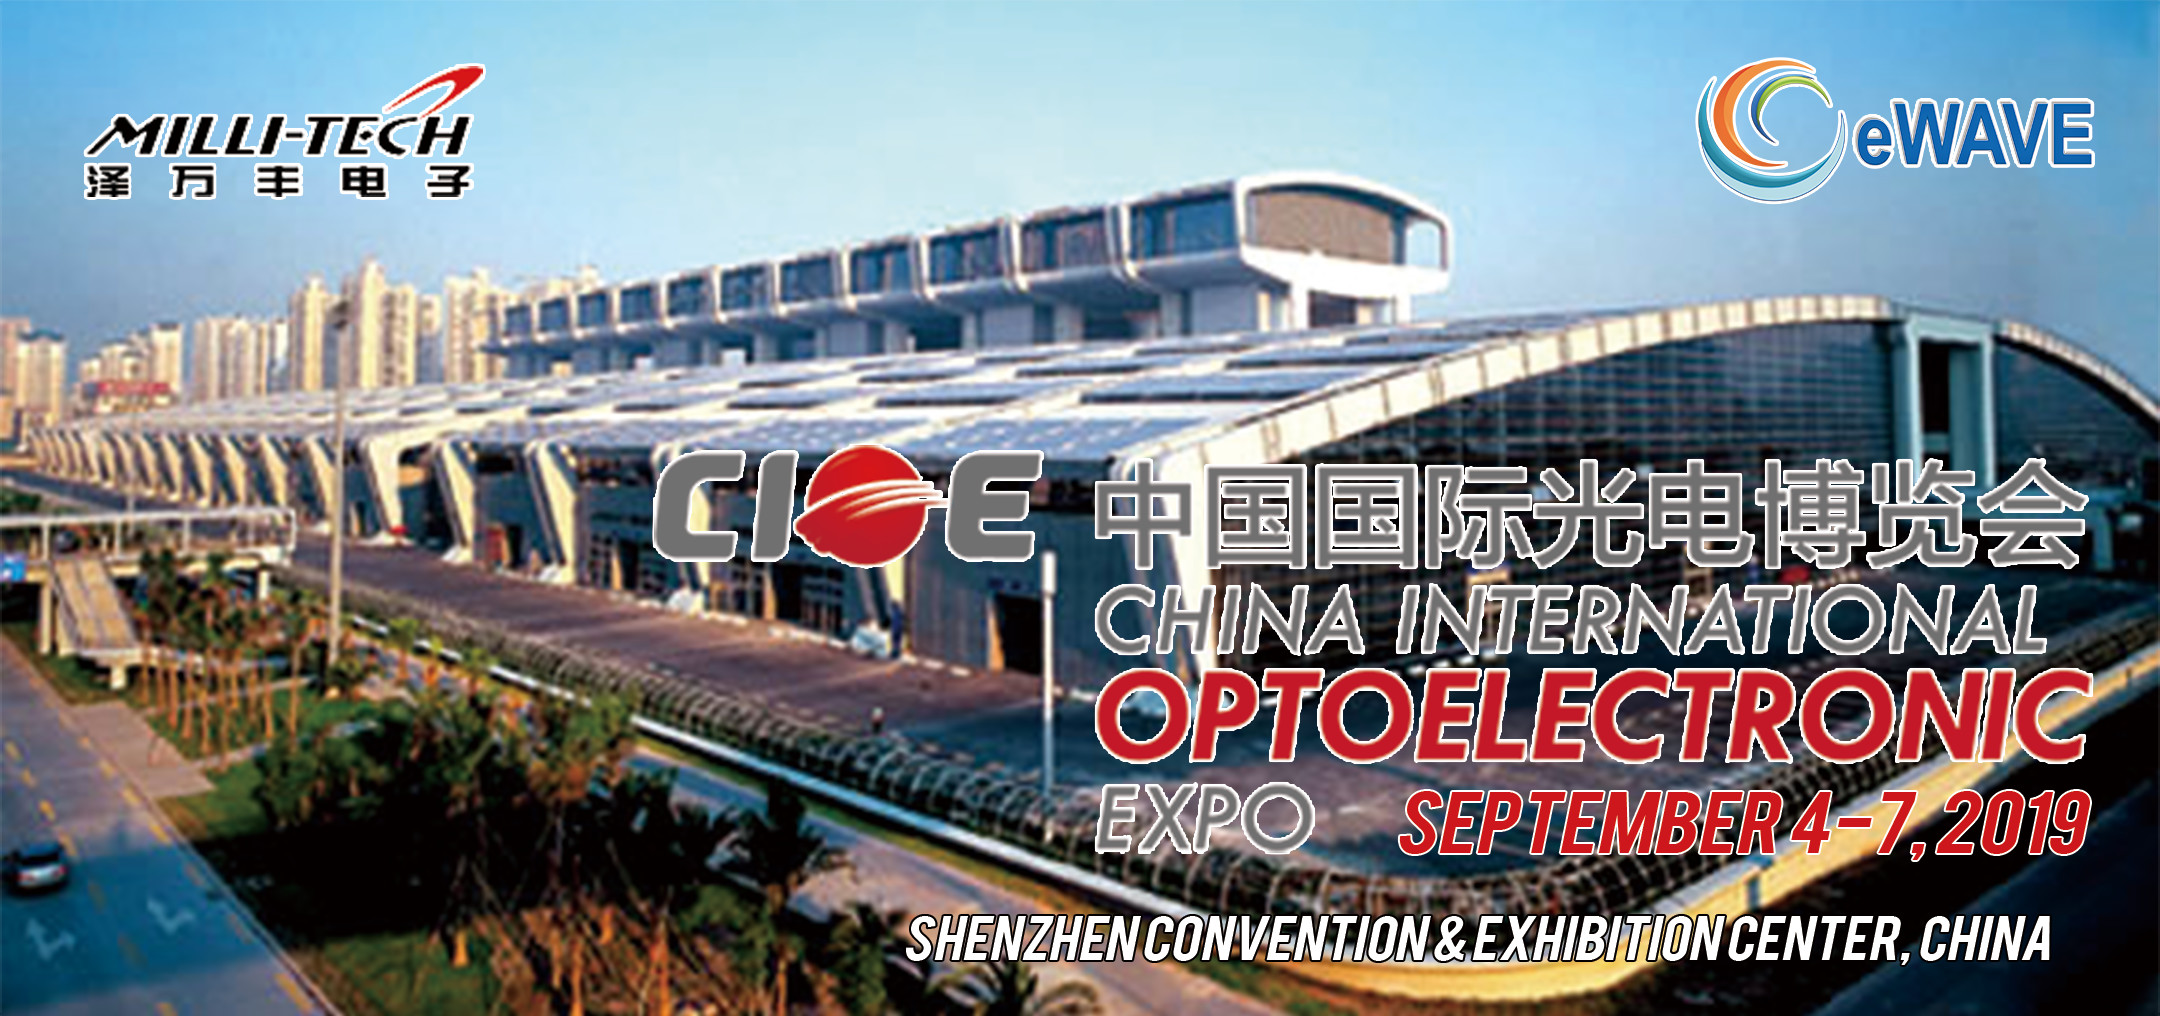 CIOE - Optical Communications Expo 2019